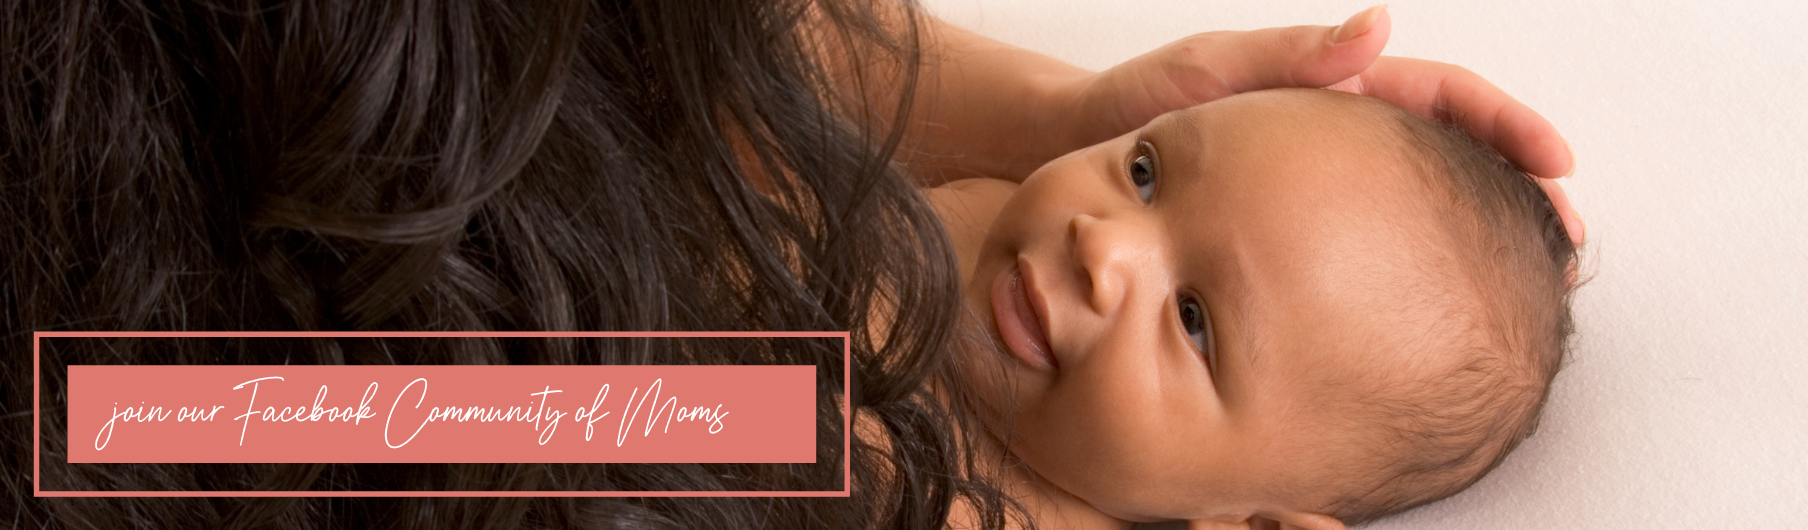 Join the BeauGen Facebook Community for Moms